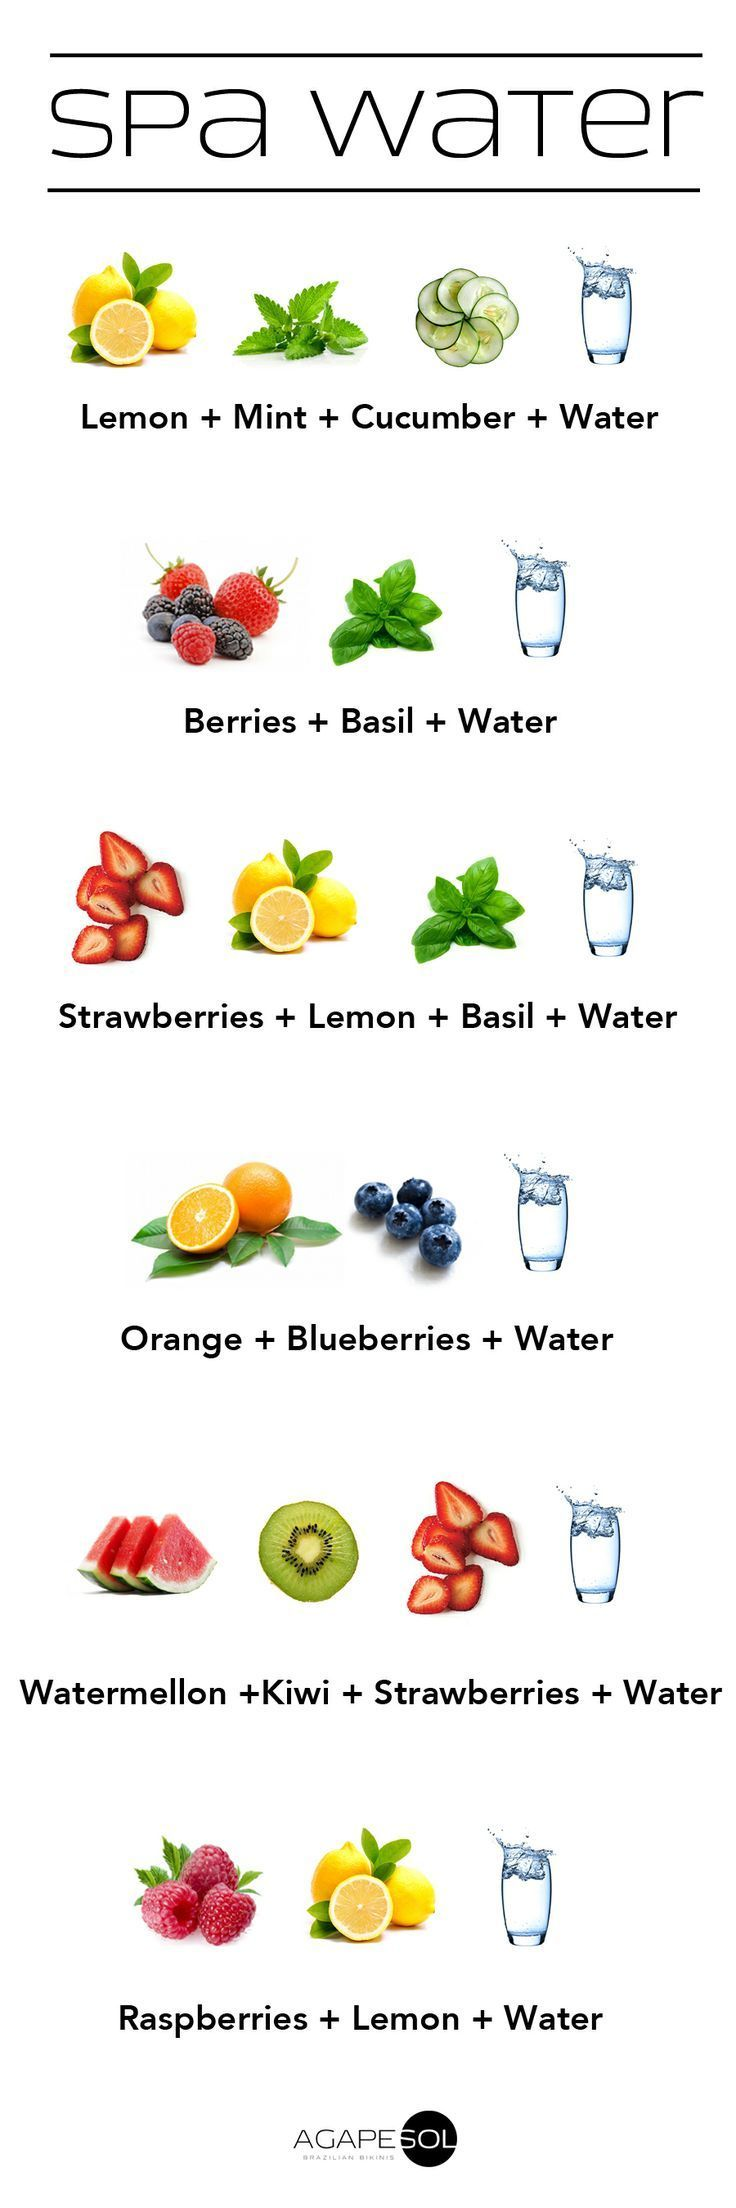 Infused Water - several ideas how to infuse water, just like how they do in spas.